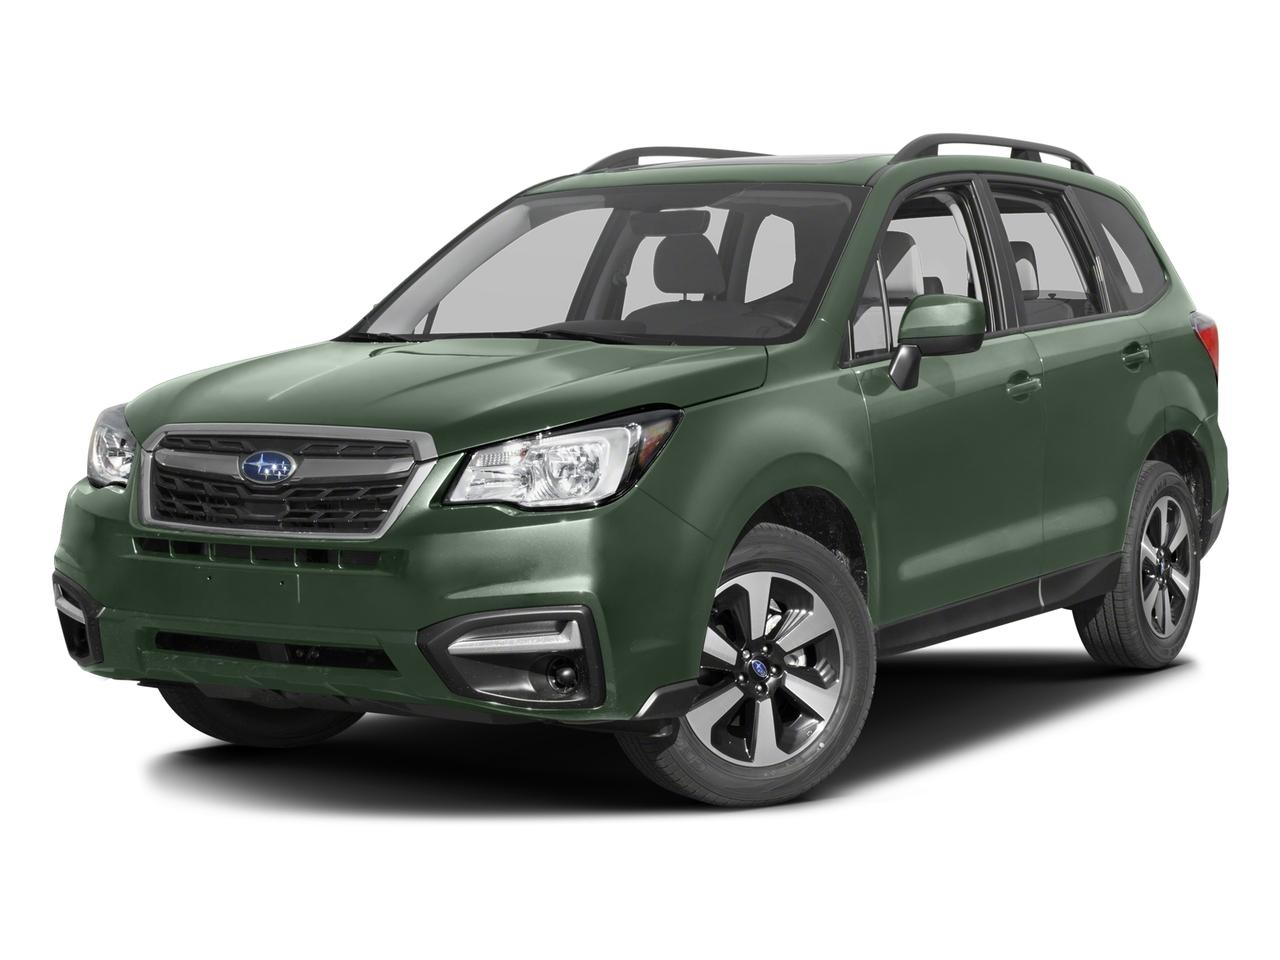 2017 Subaru Forester Vehicle Photo in Rockford, IL 61107